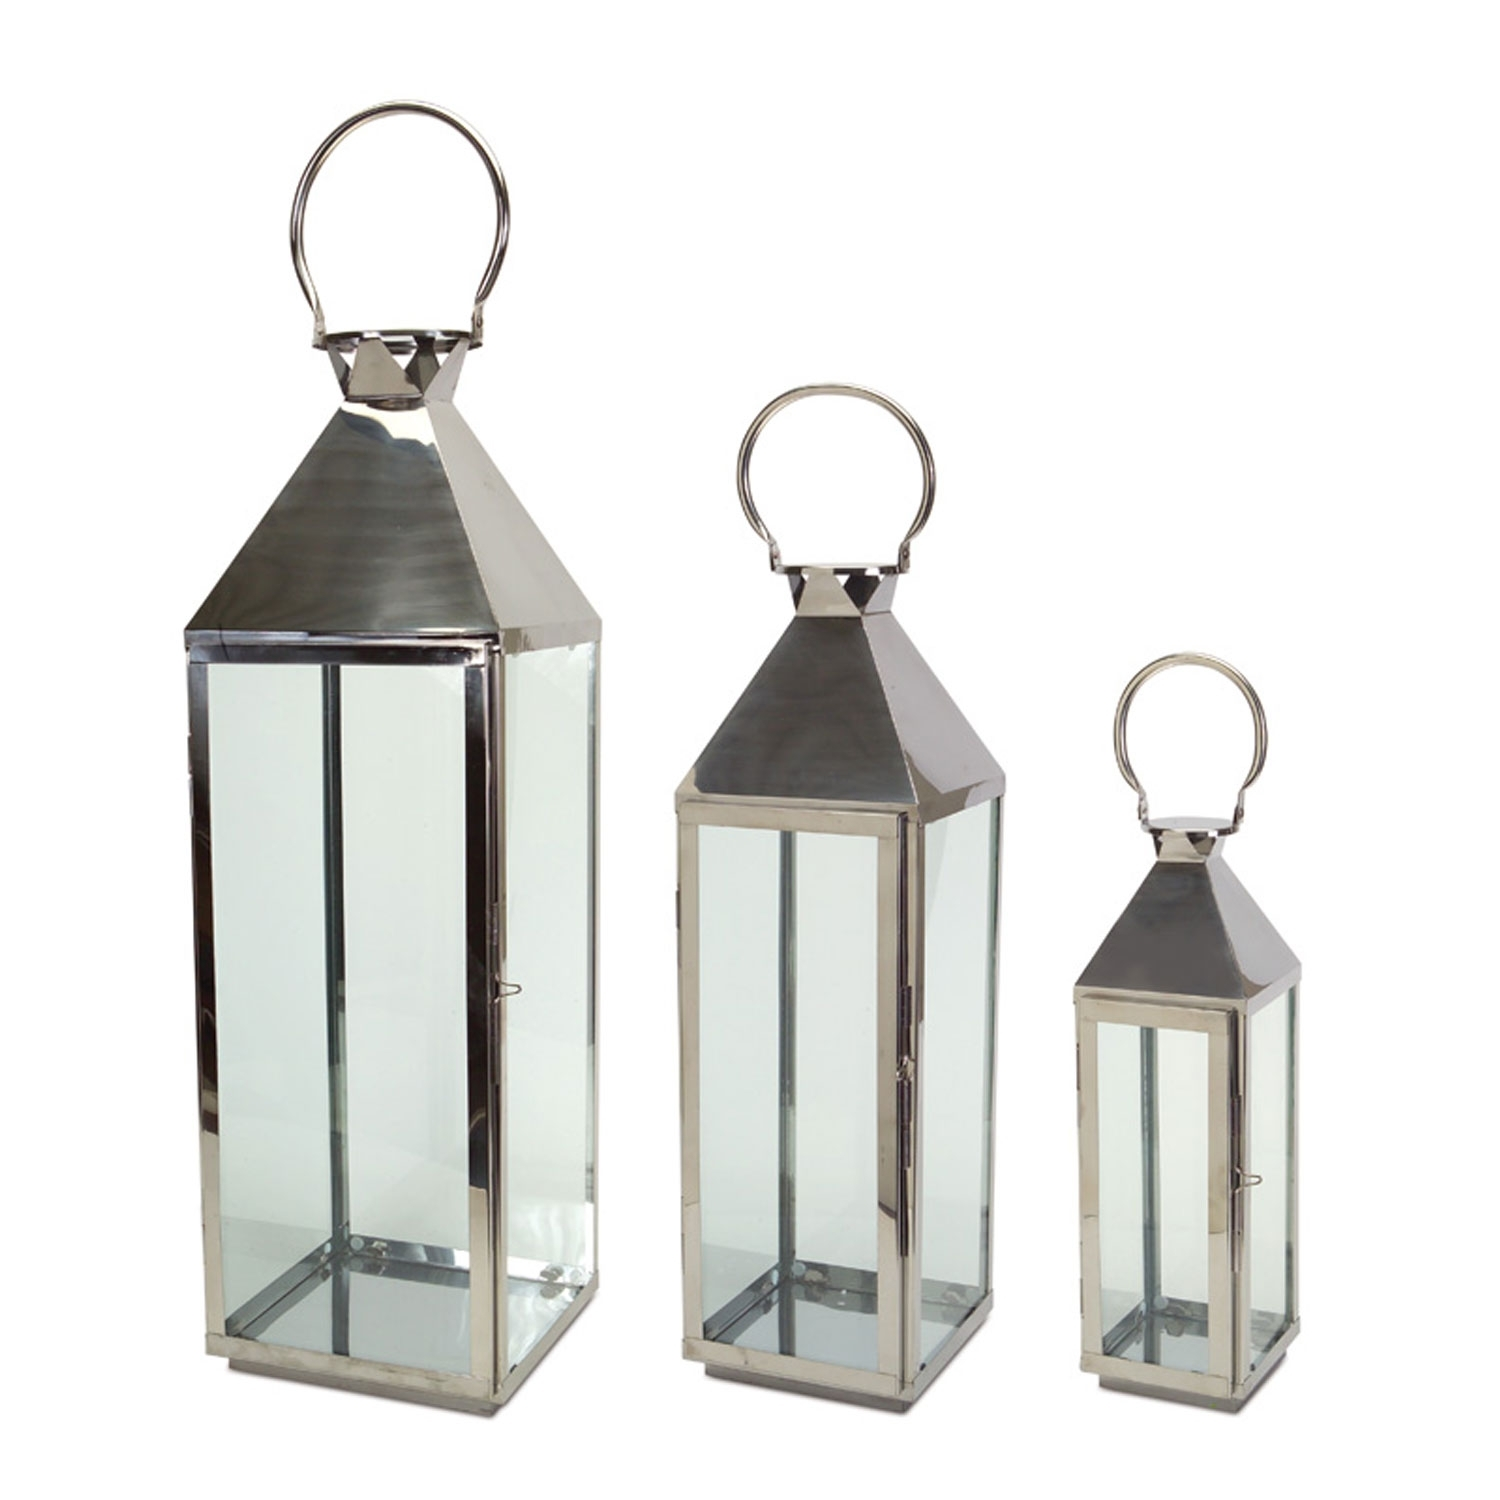 Candle Lanterns, Outdoor Hanging Lanterns, Decorative On Sale Regarding Outdoor Hanging Lanterns With Stand (View 14 of 15)